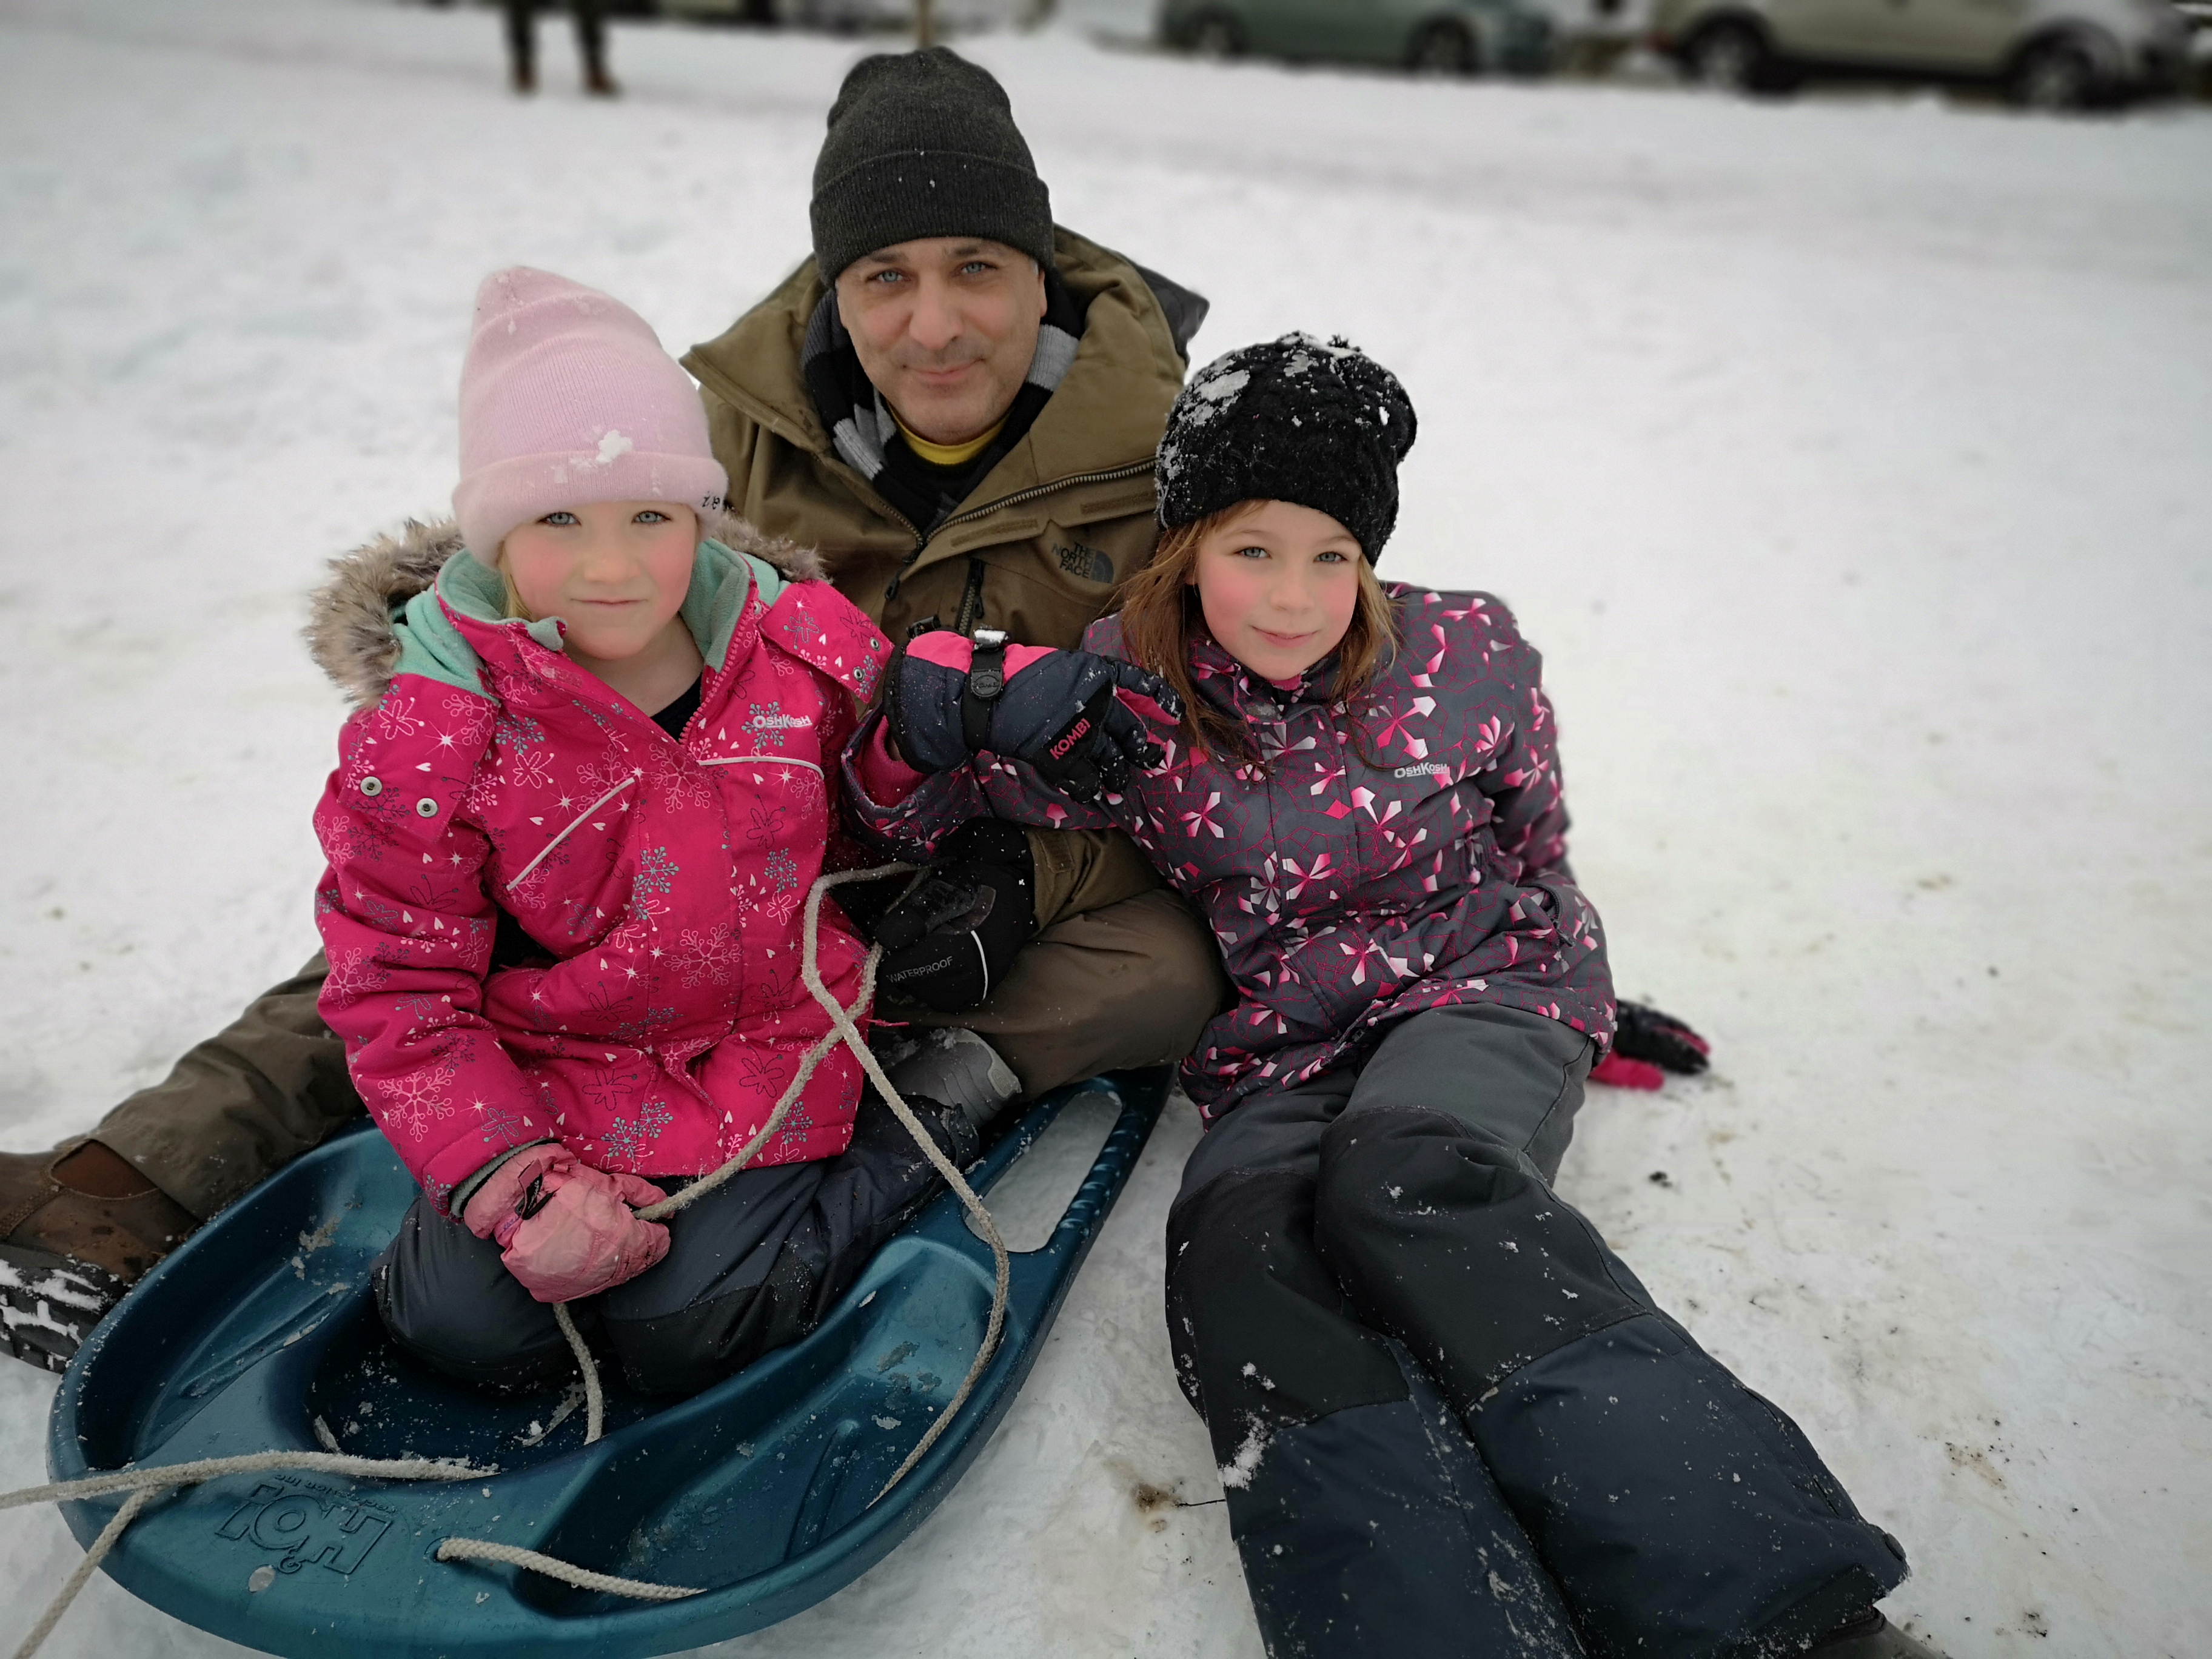 Stefan Linquist sledding with his                                 daughters